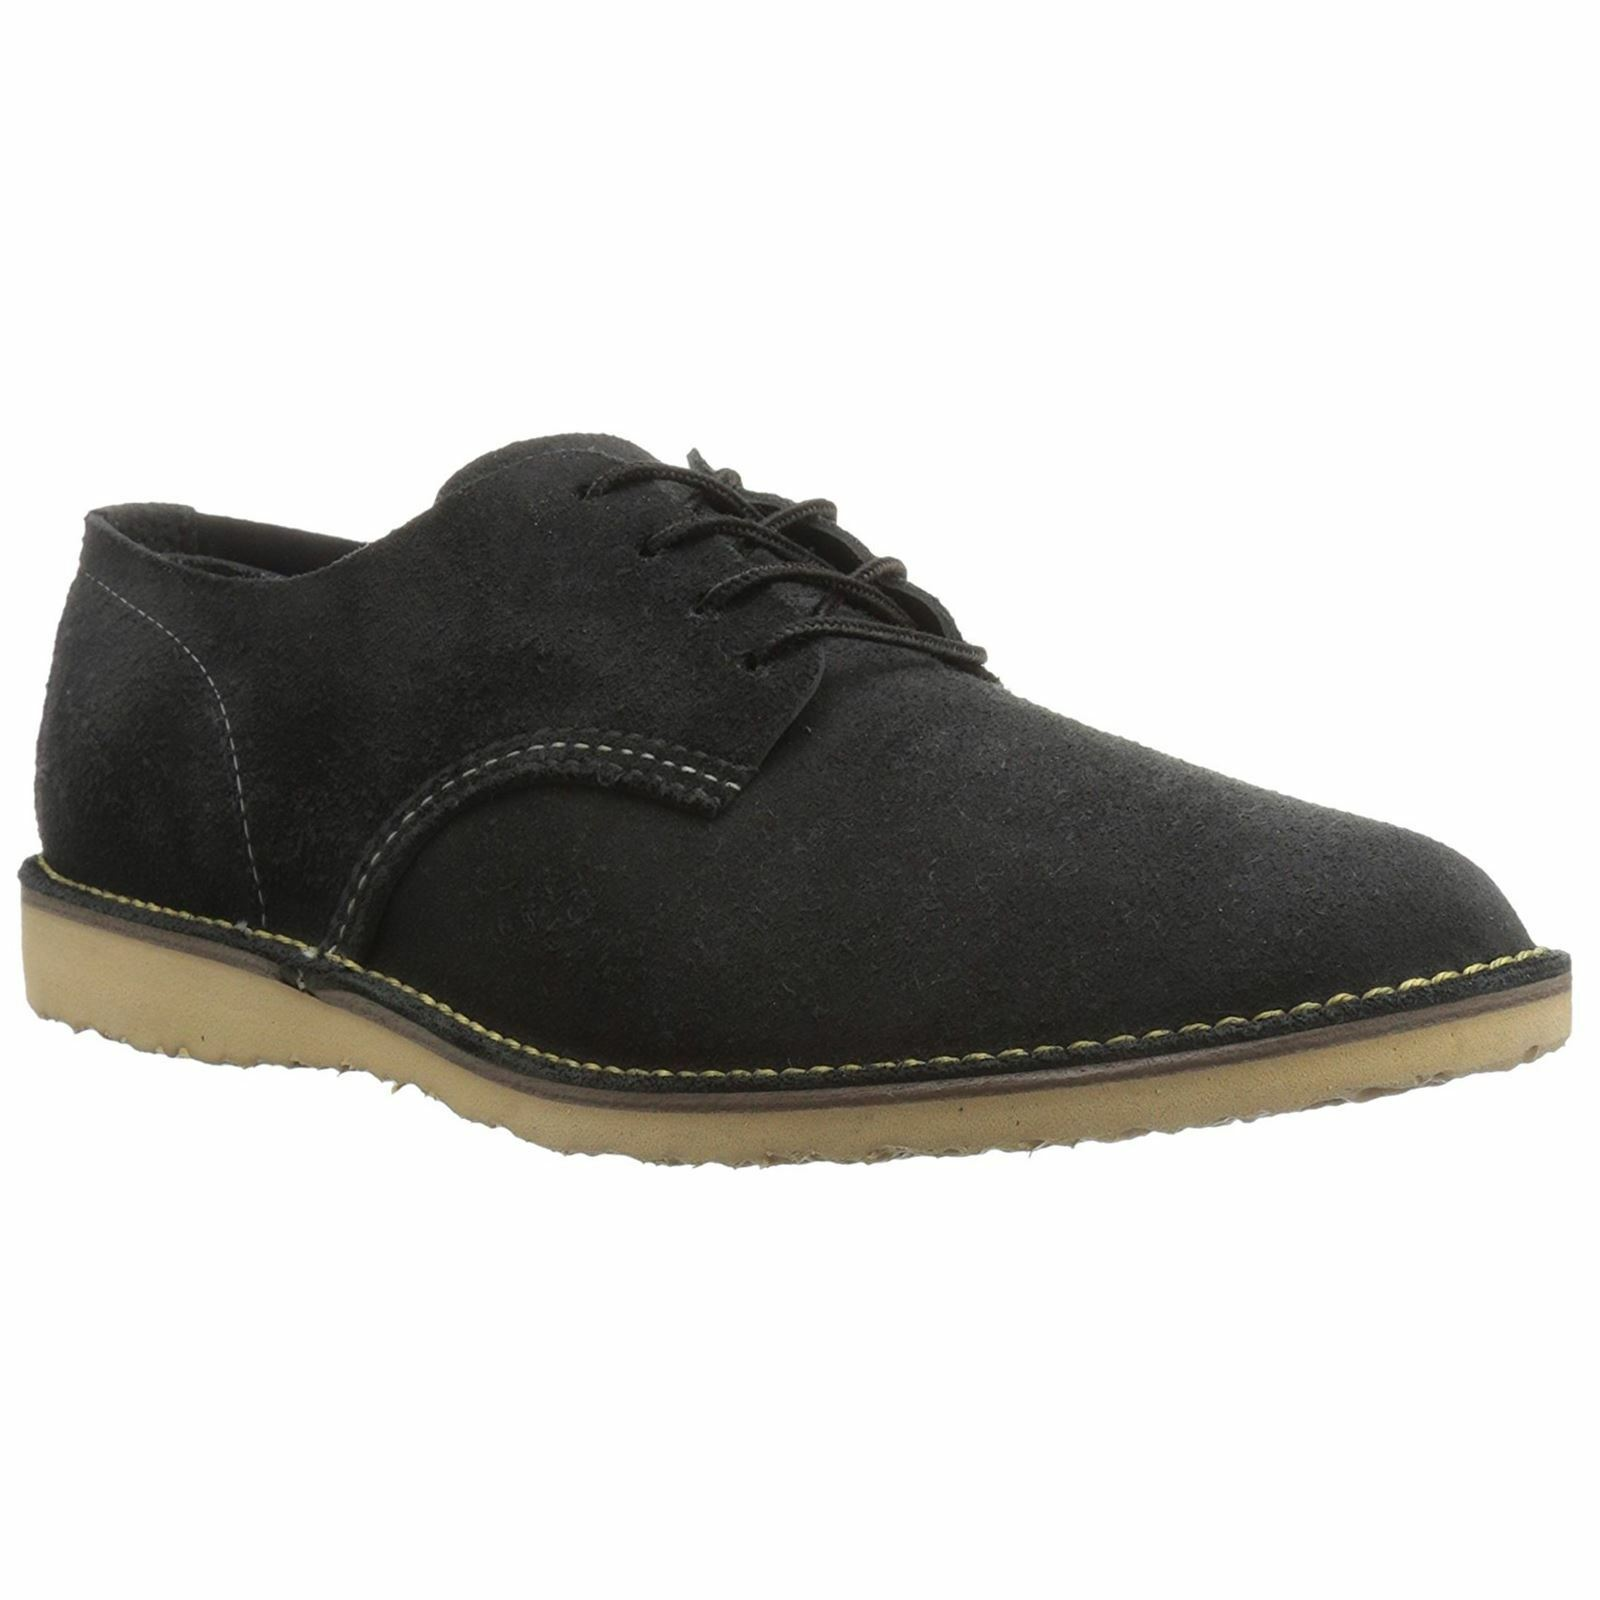 Red Wing Weekender Oxford 3304 Black Mens Leather Lace-Up Low Profile shoes